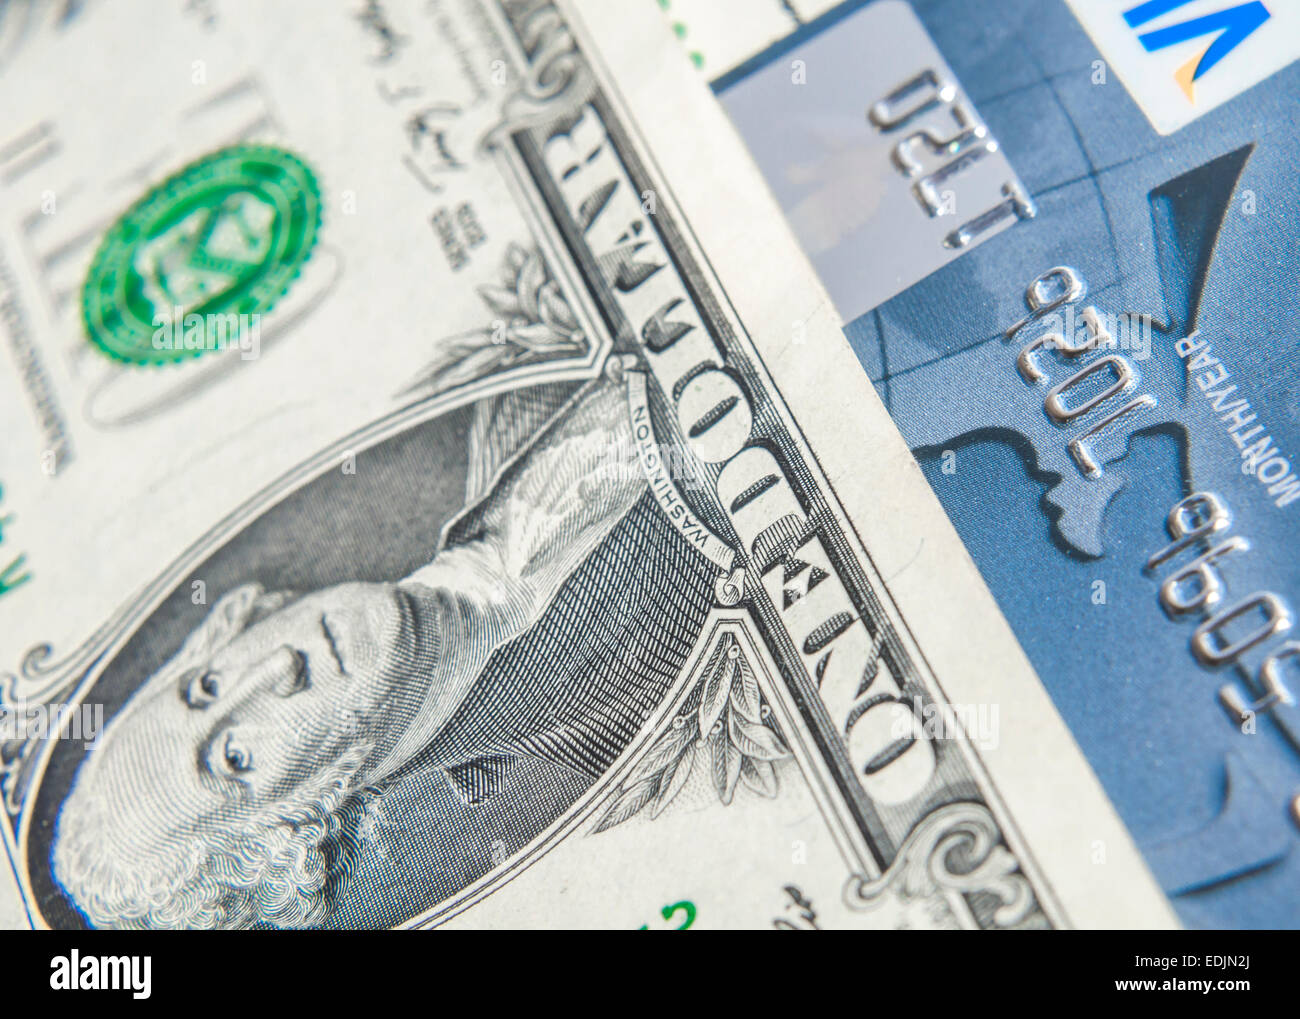 Credit Card on dollar bills as wealthy concept. Close up. - Stock Image